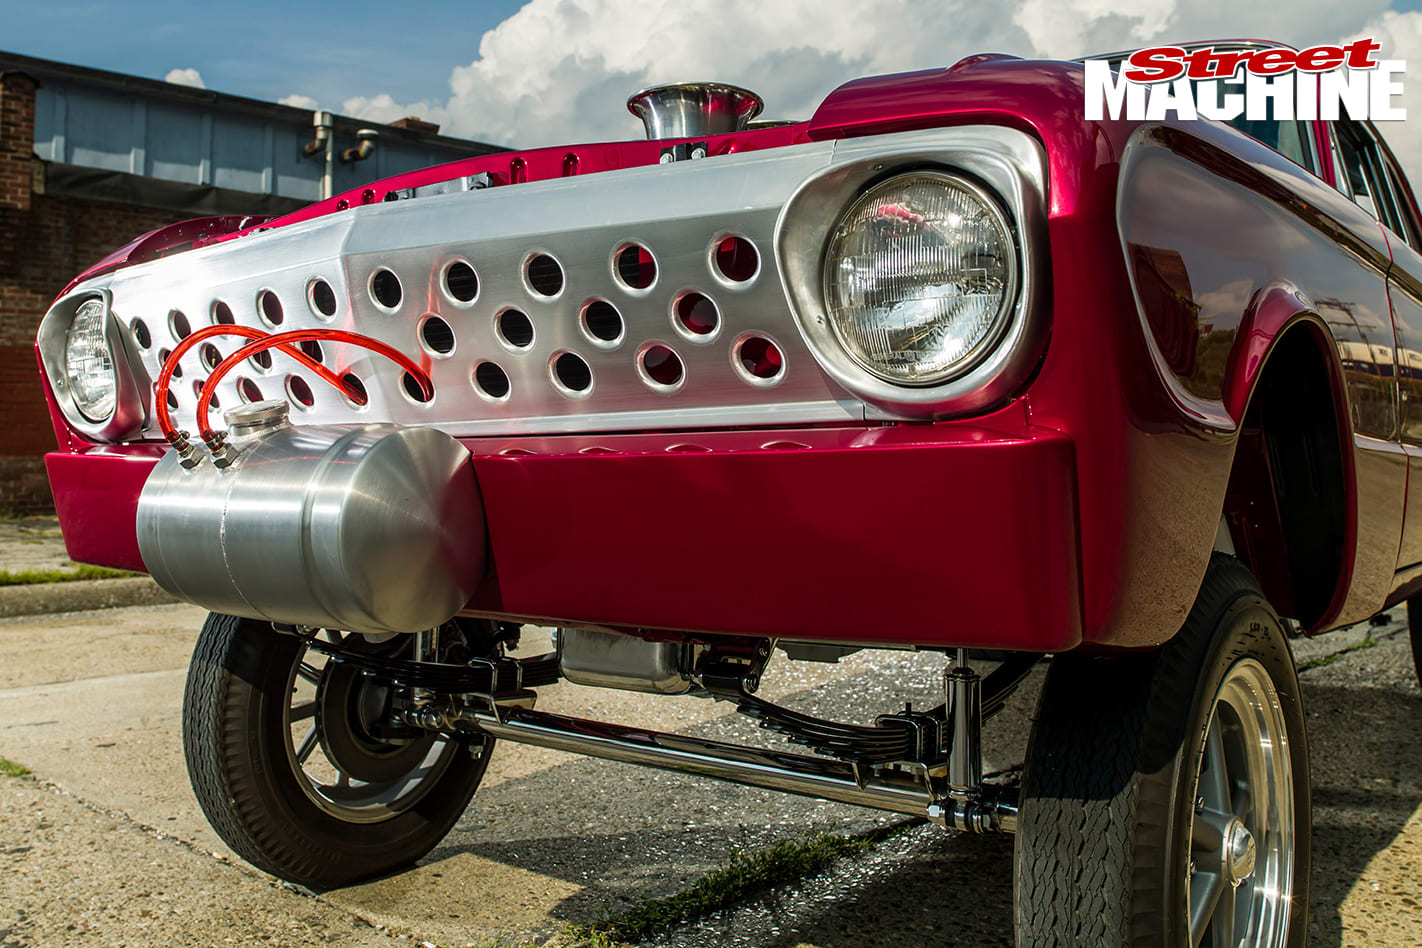 Ford -Falcon -gasser -front -detail